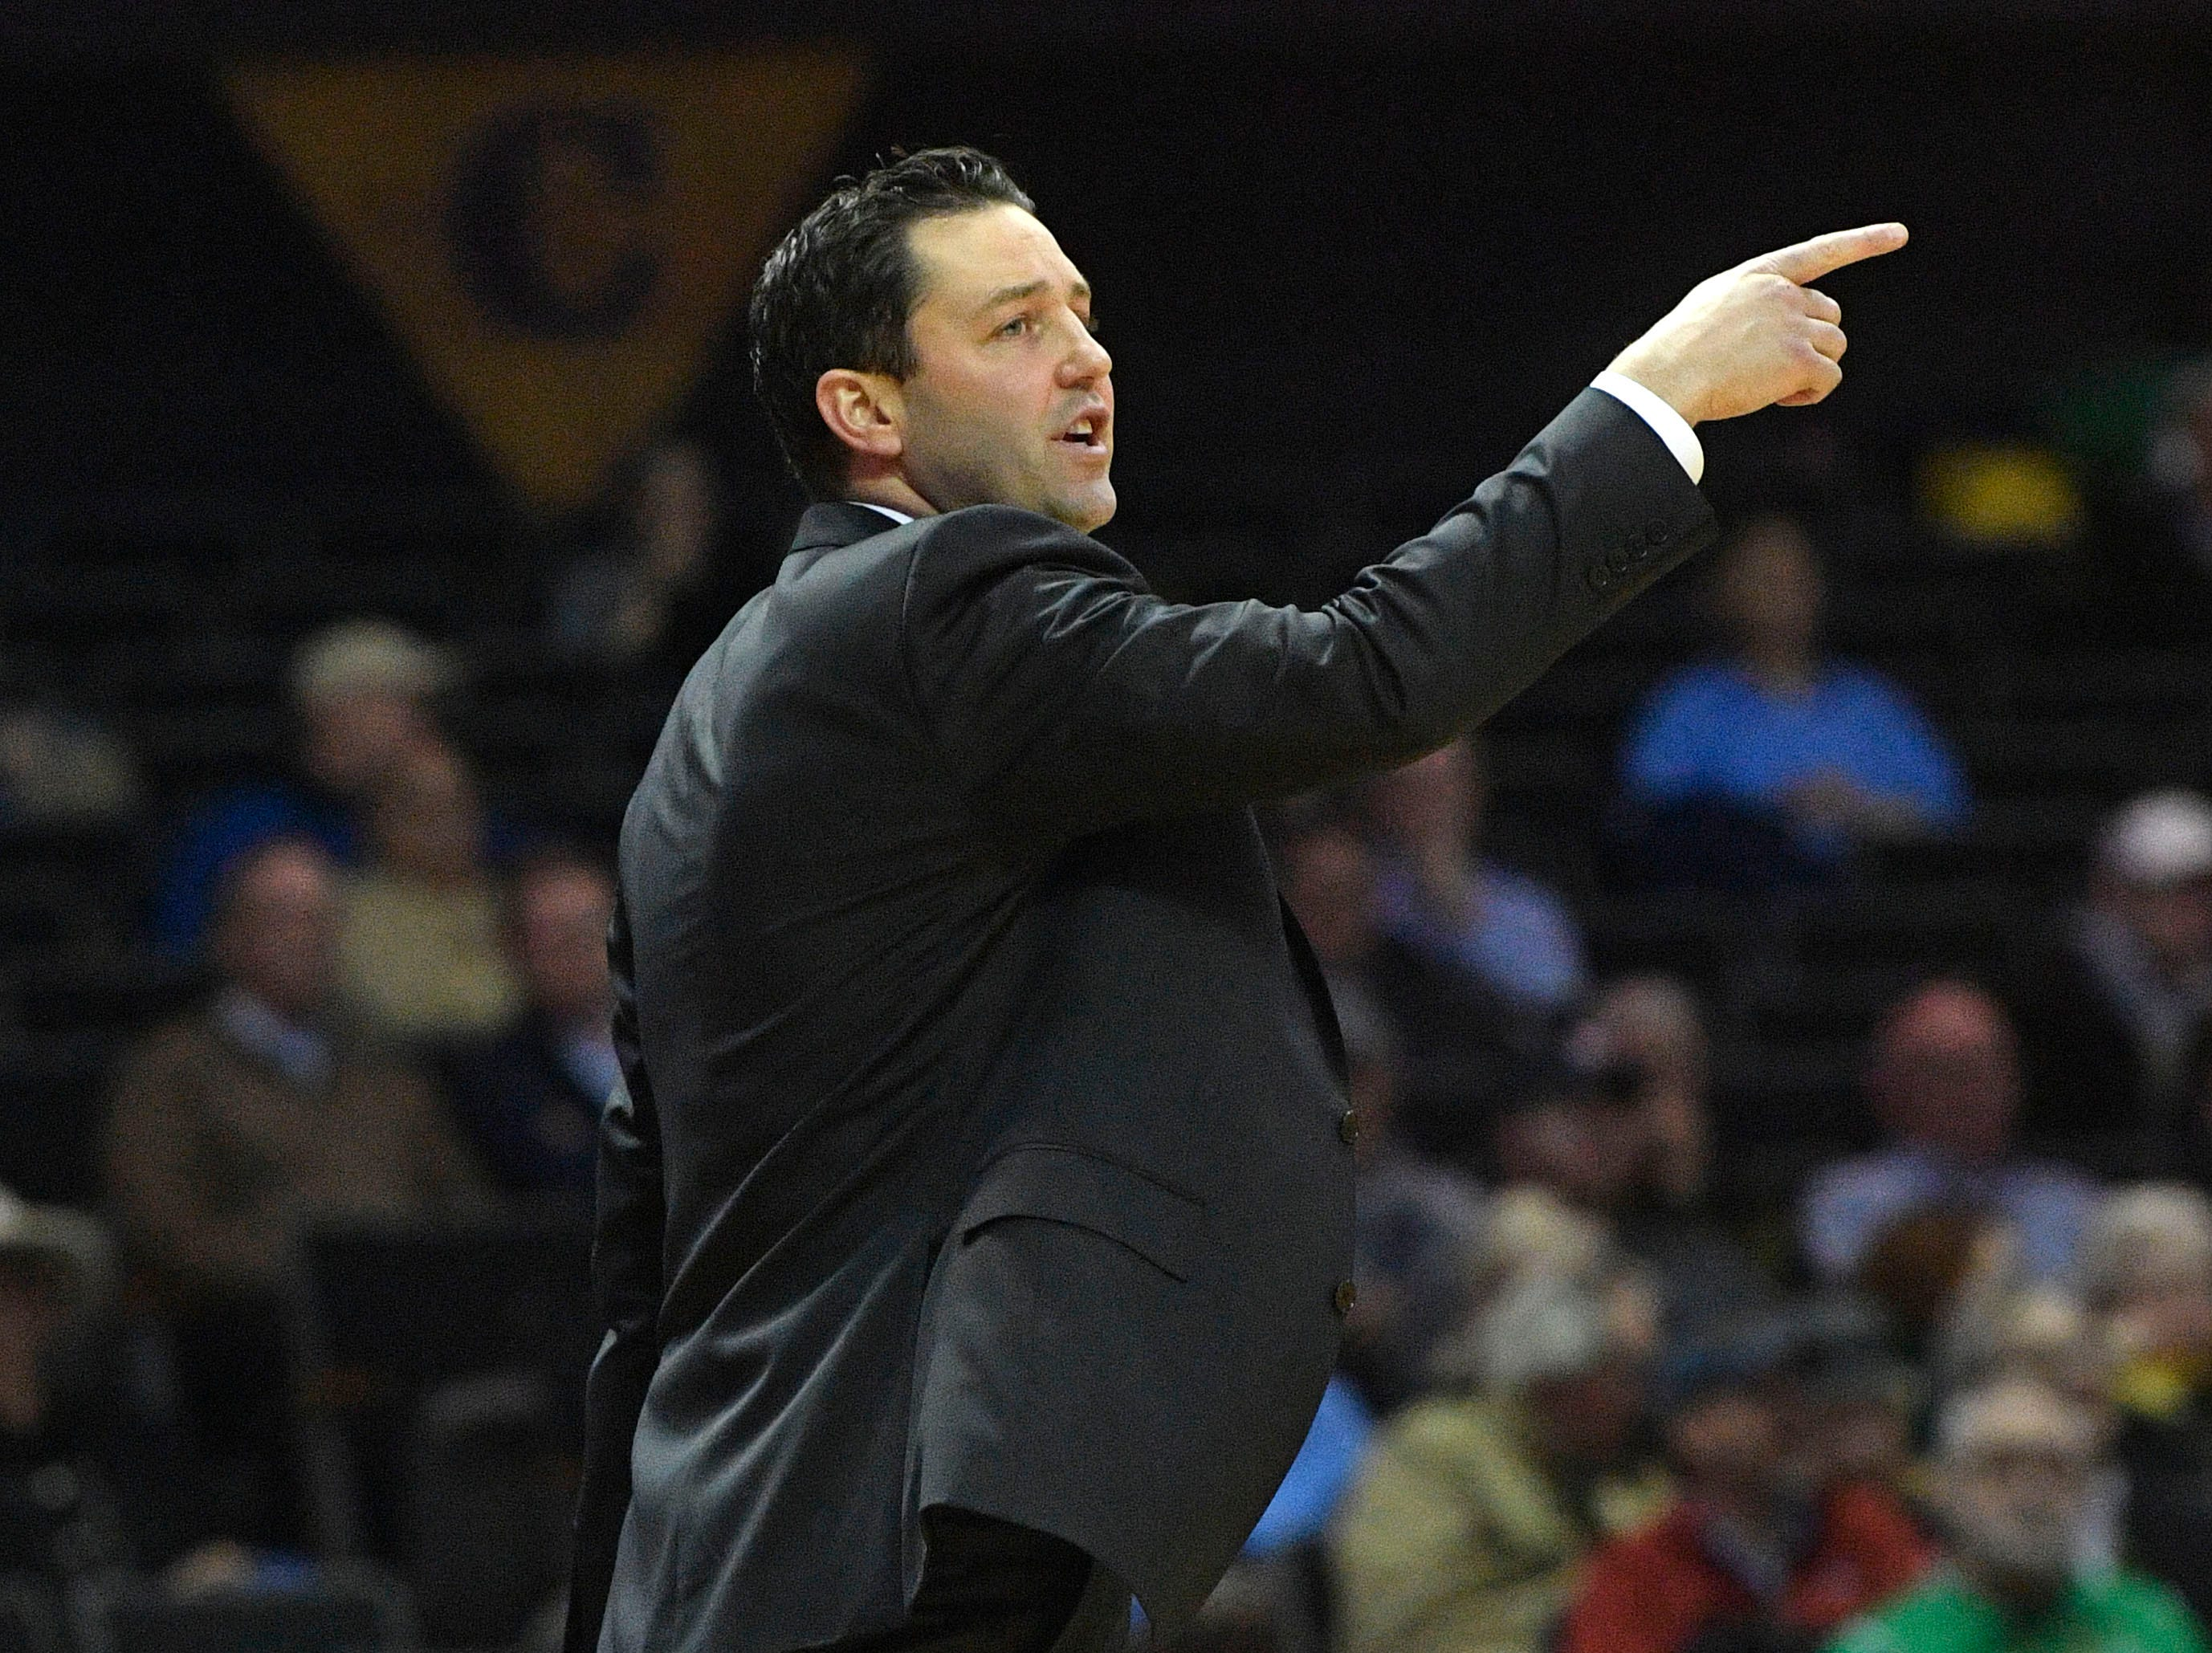 Coach Bryce Drew gives instructions to his players as Vanderbilt plays Savannah State at Memorial Gym